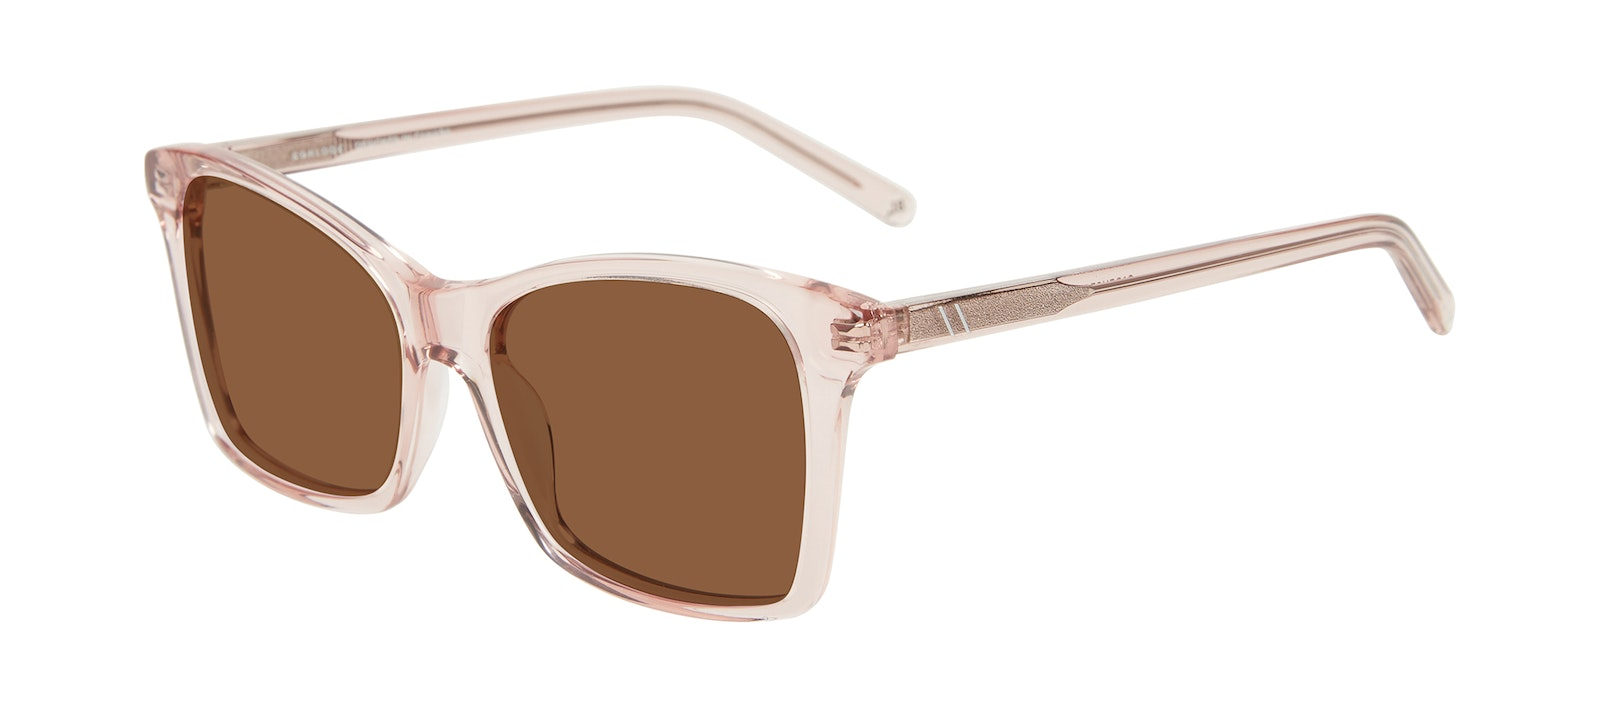 Affordable Fashion Glasses Square Sunglasses Women Cadence Pink Tilt